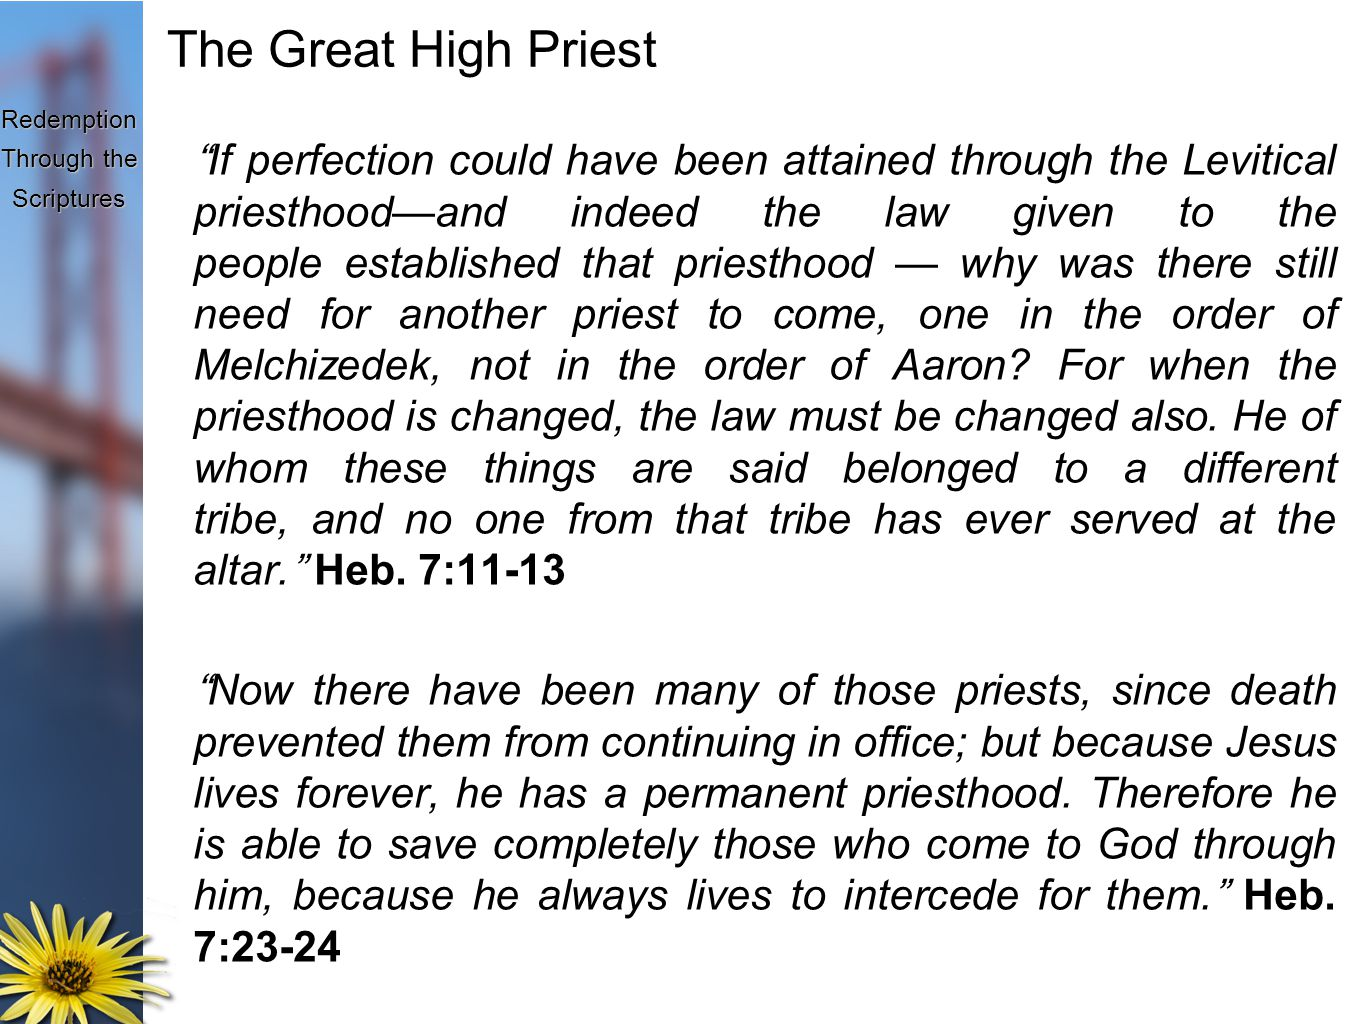 Redemption Through the Scriptures The Great High Priest If perfection could have been attained through the Levitical priesthood—and indeed the law given to the people established that priesthood — why was there still need for another priest to come, one in the order of Melchizedek, not in the order of Aaron.